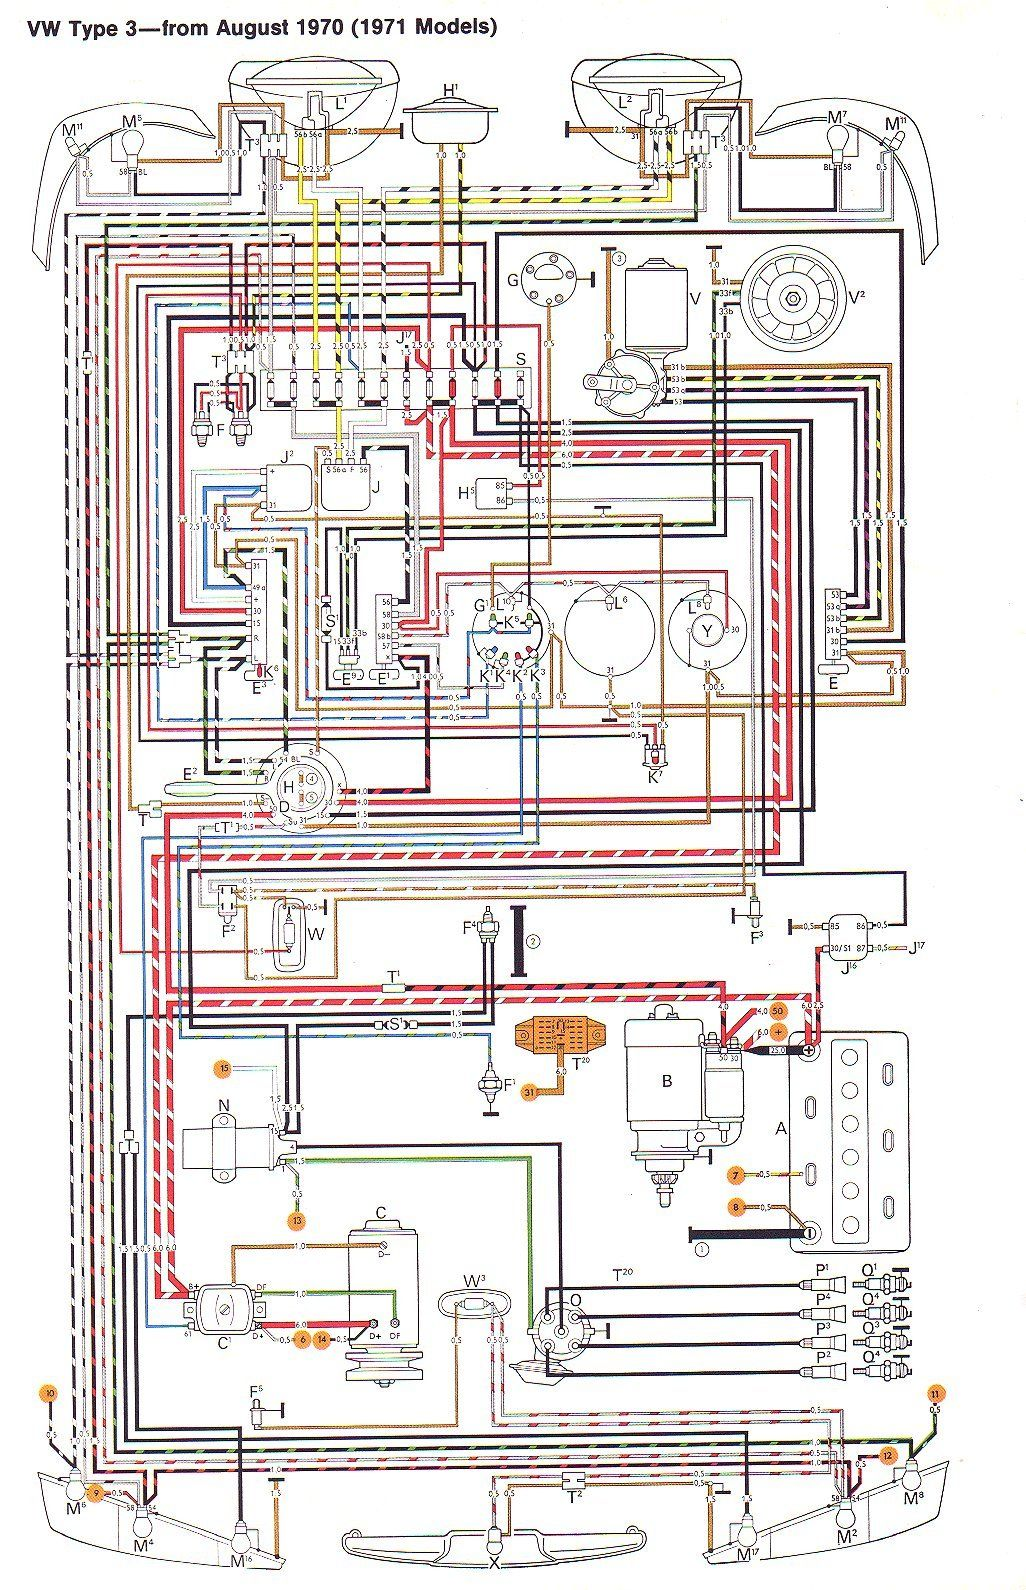 td wiring diagram wiring diagram data val mg td manual wrg 7265 td wiring diagram [ 1026 x 1590 Pixel ]